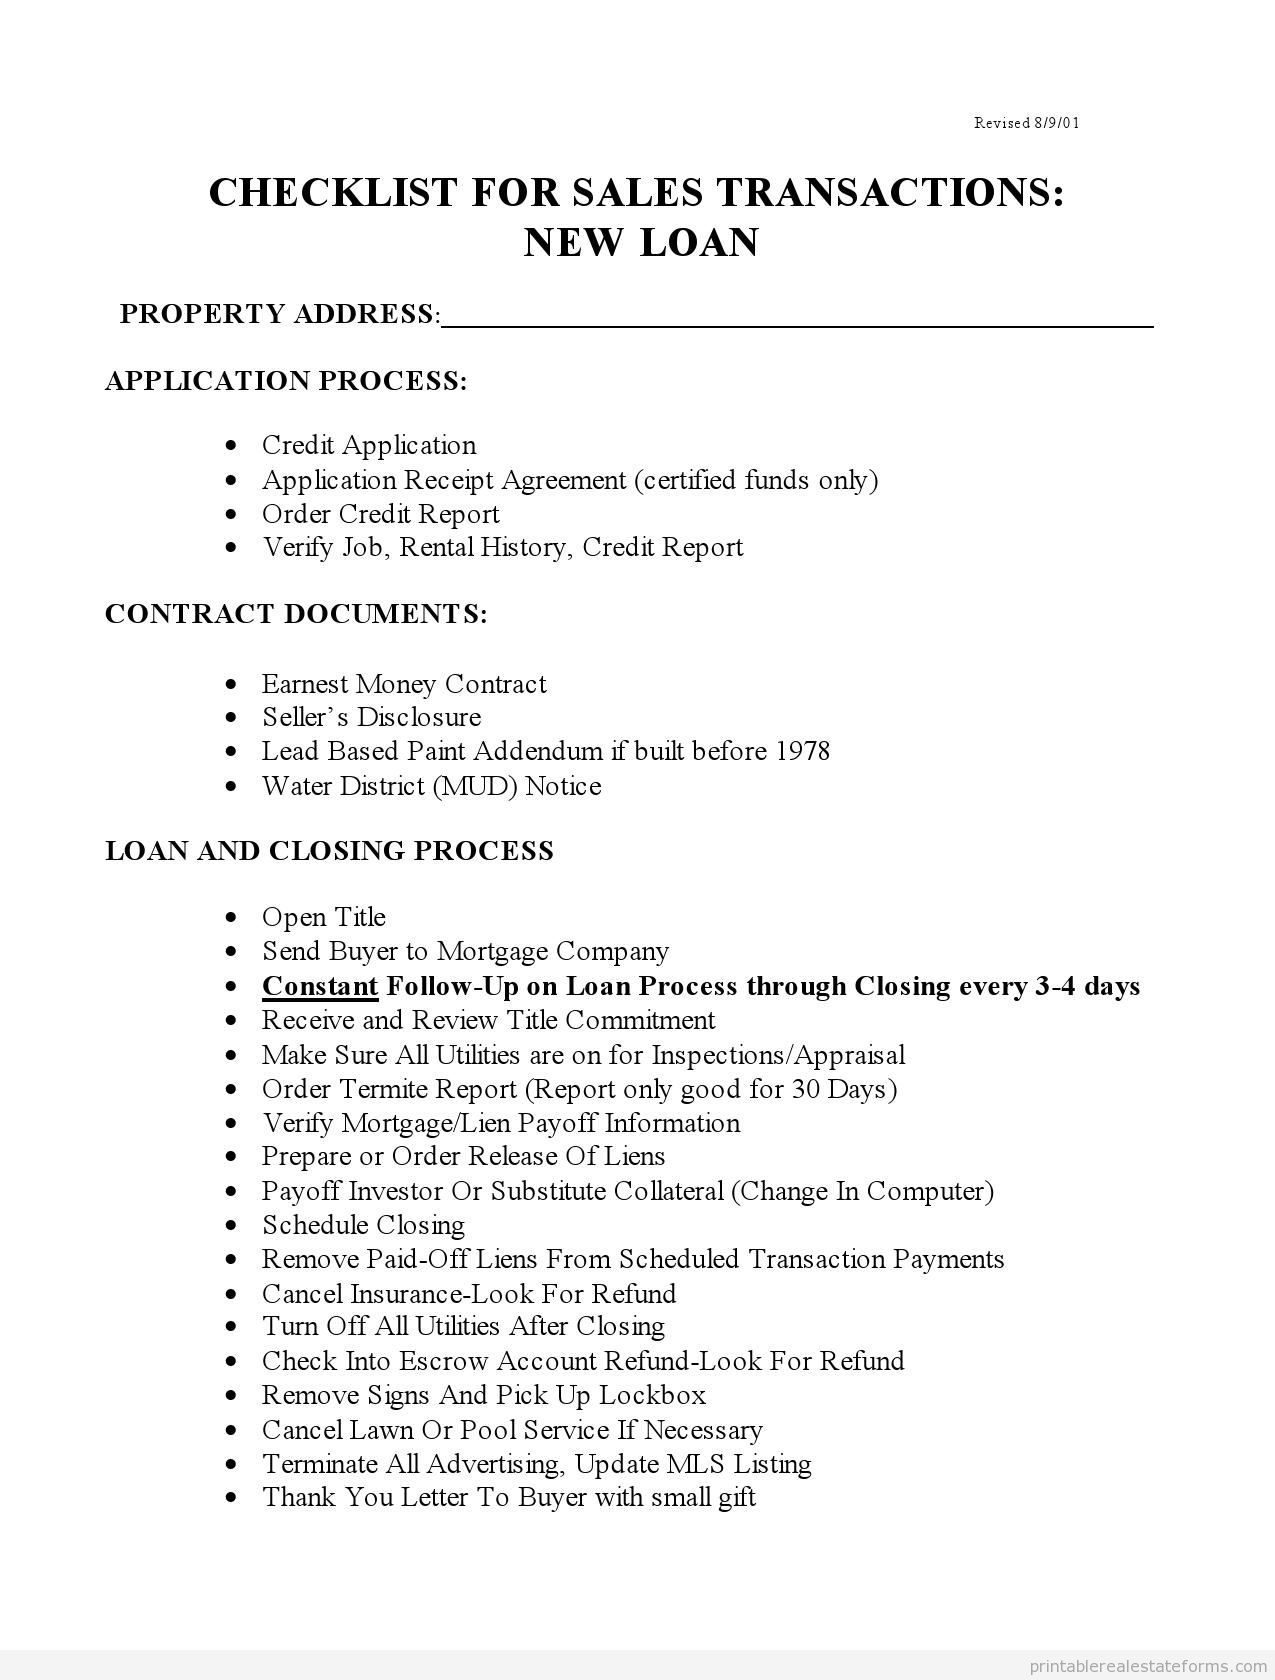 Printable Checklist For Sales With New Loans  Template